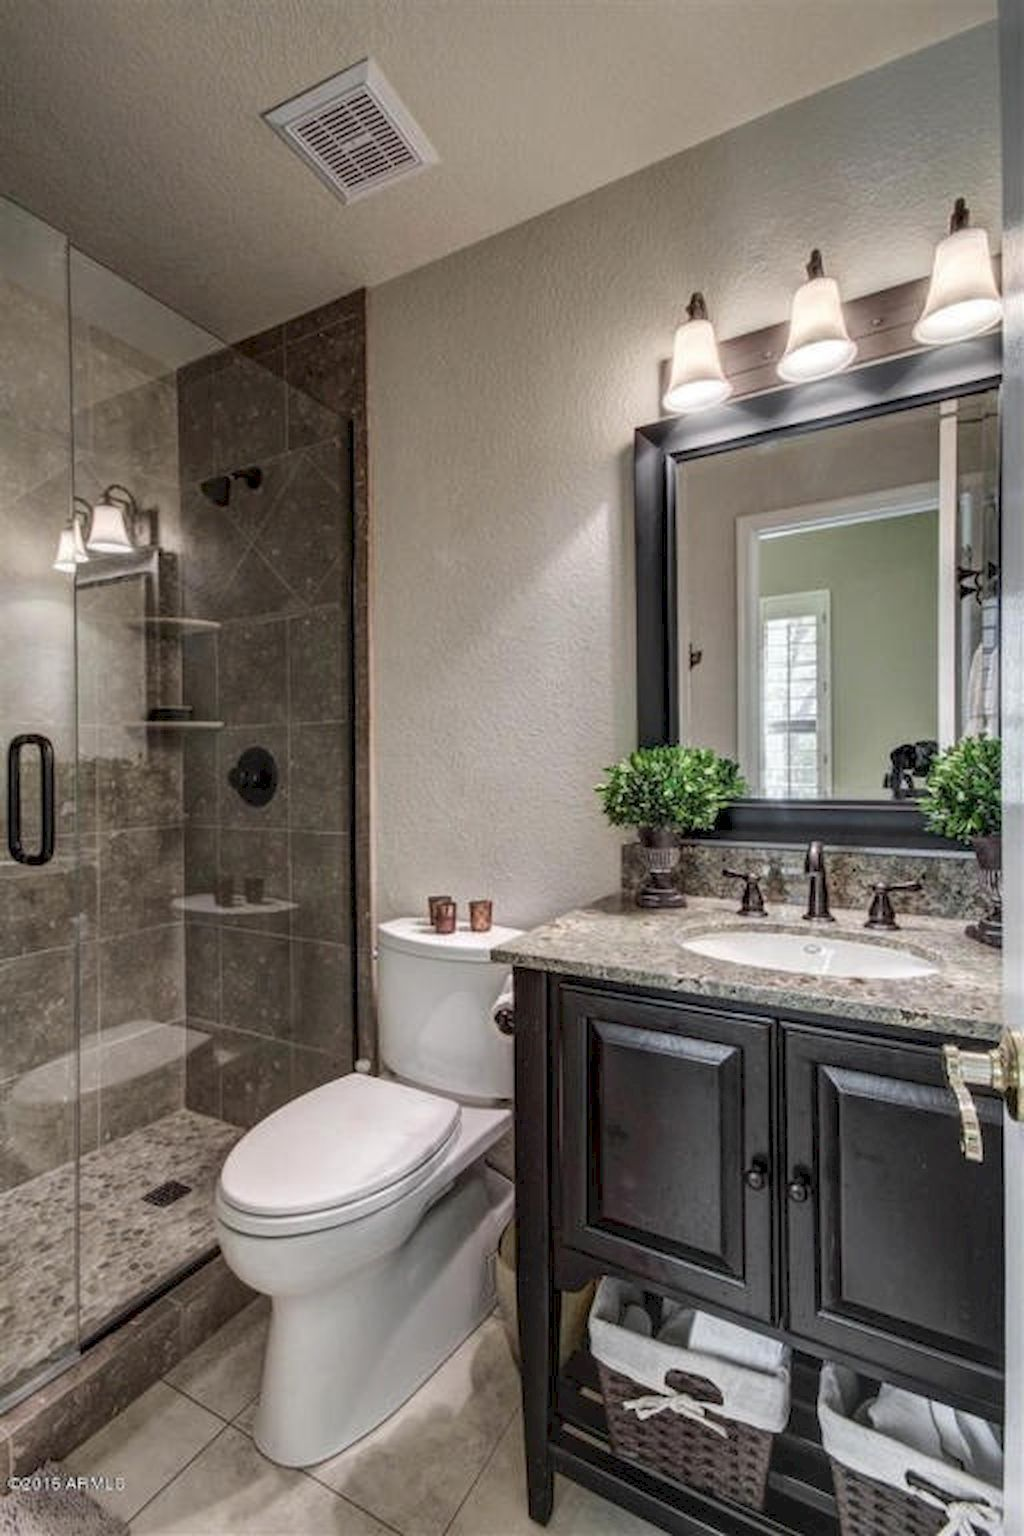 Bathroom Design Ideas 2017 55 cool small master bathroom remodel ideas | master bathrooms